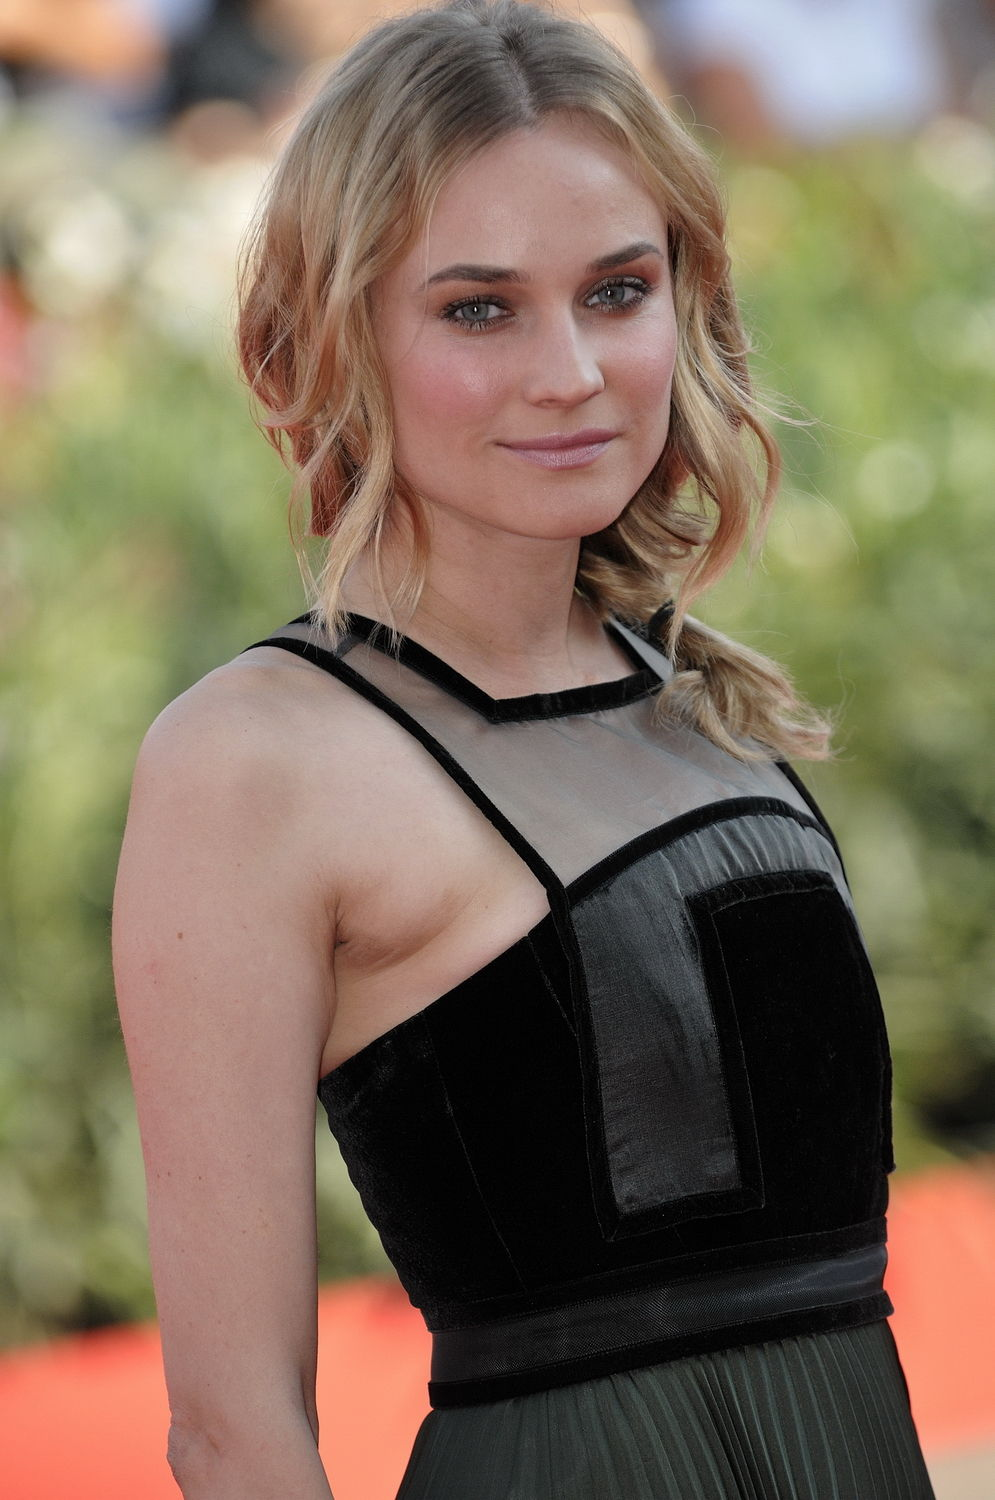 Celebrites Diane Kruger nude (48 foto and video), Tits, Paparazzi, Twitter, bra 2019